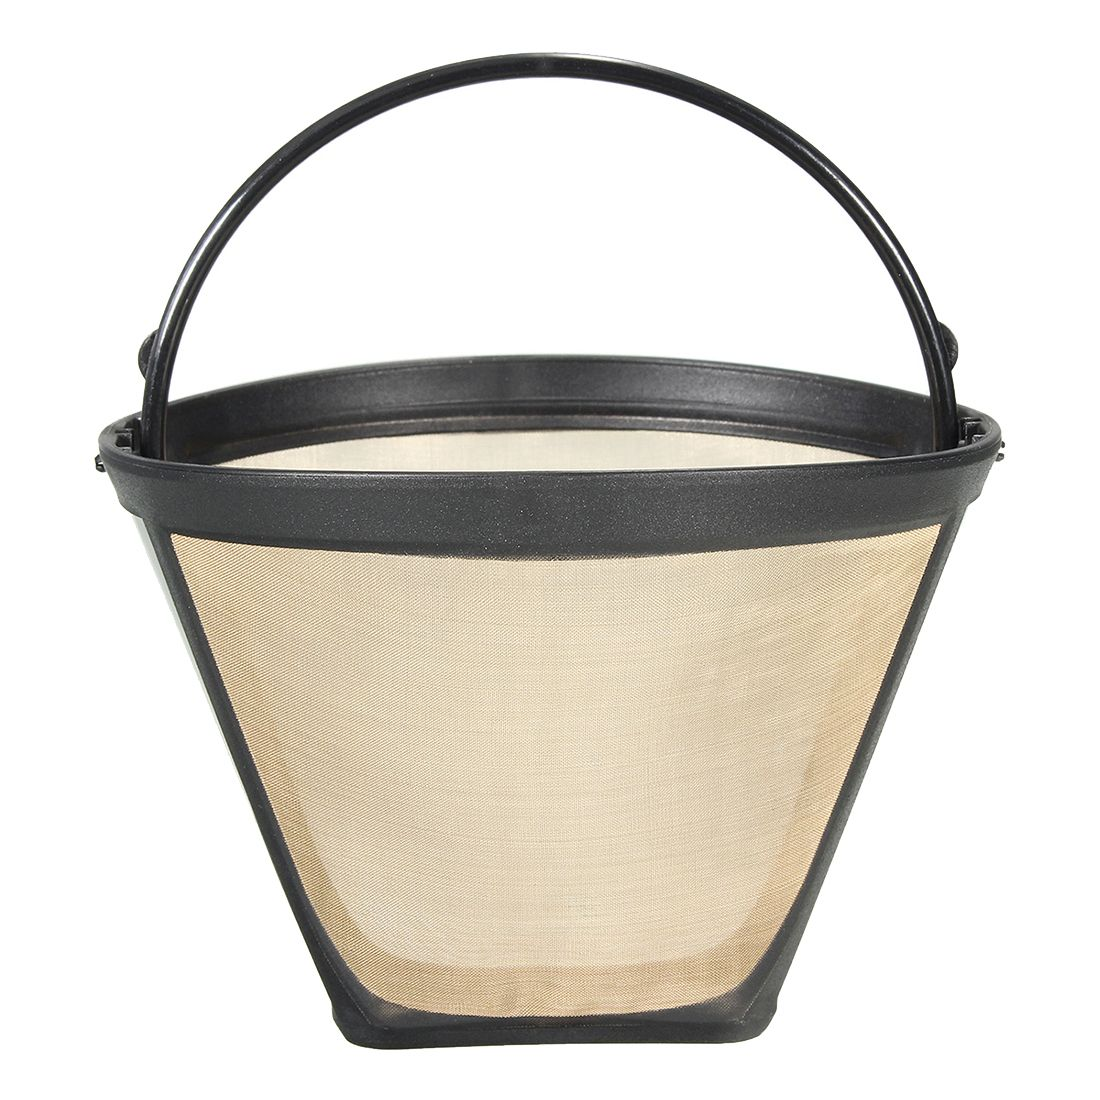 NEW-1PC Permanent Reusable #4 Cone Shape Coffee Filter Mesh Basket Stainless Easy Clean Washable Reusable Permanent Coffee Filte